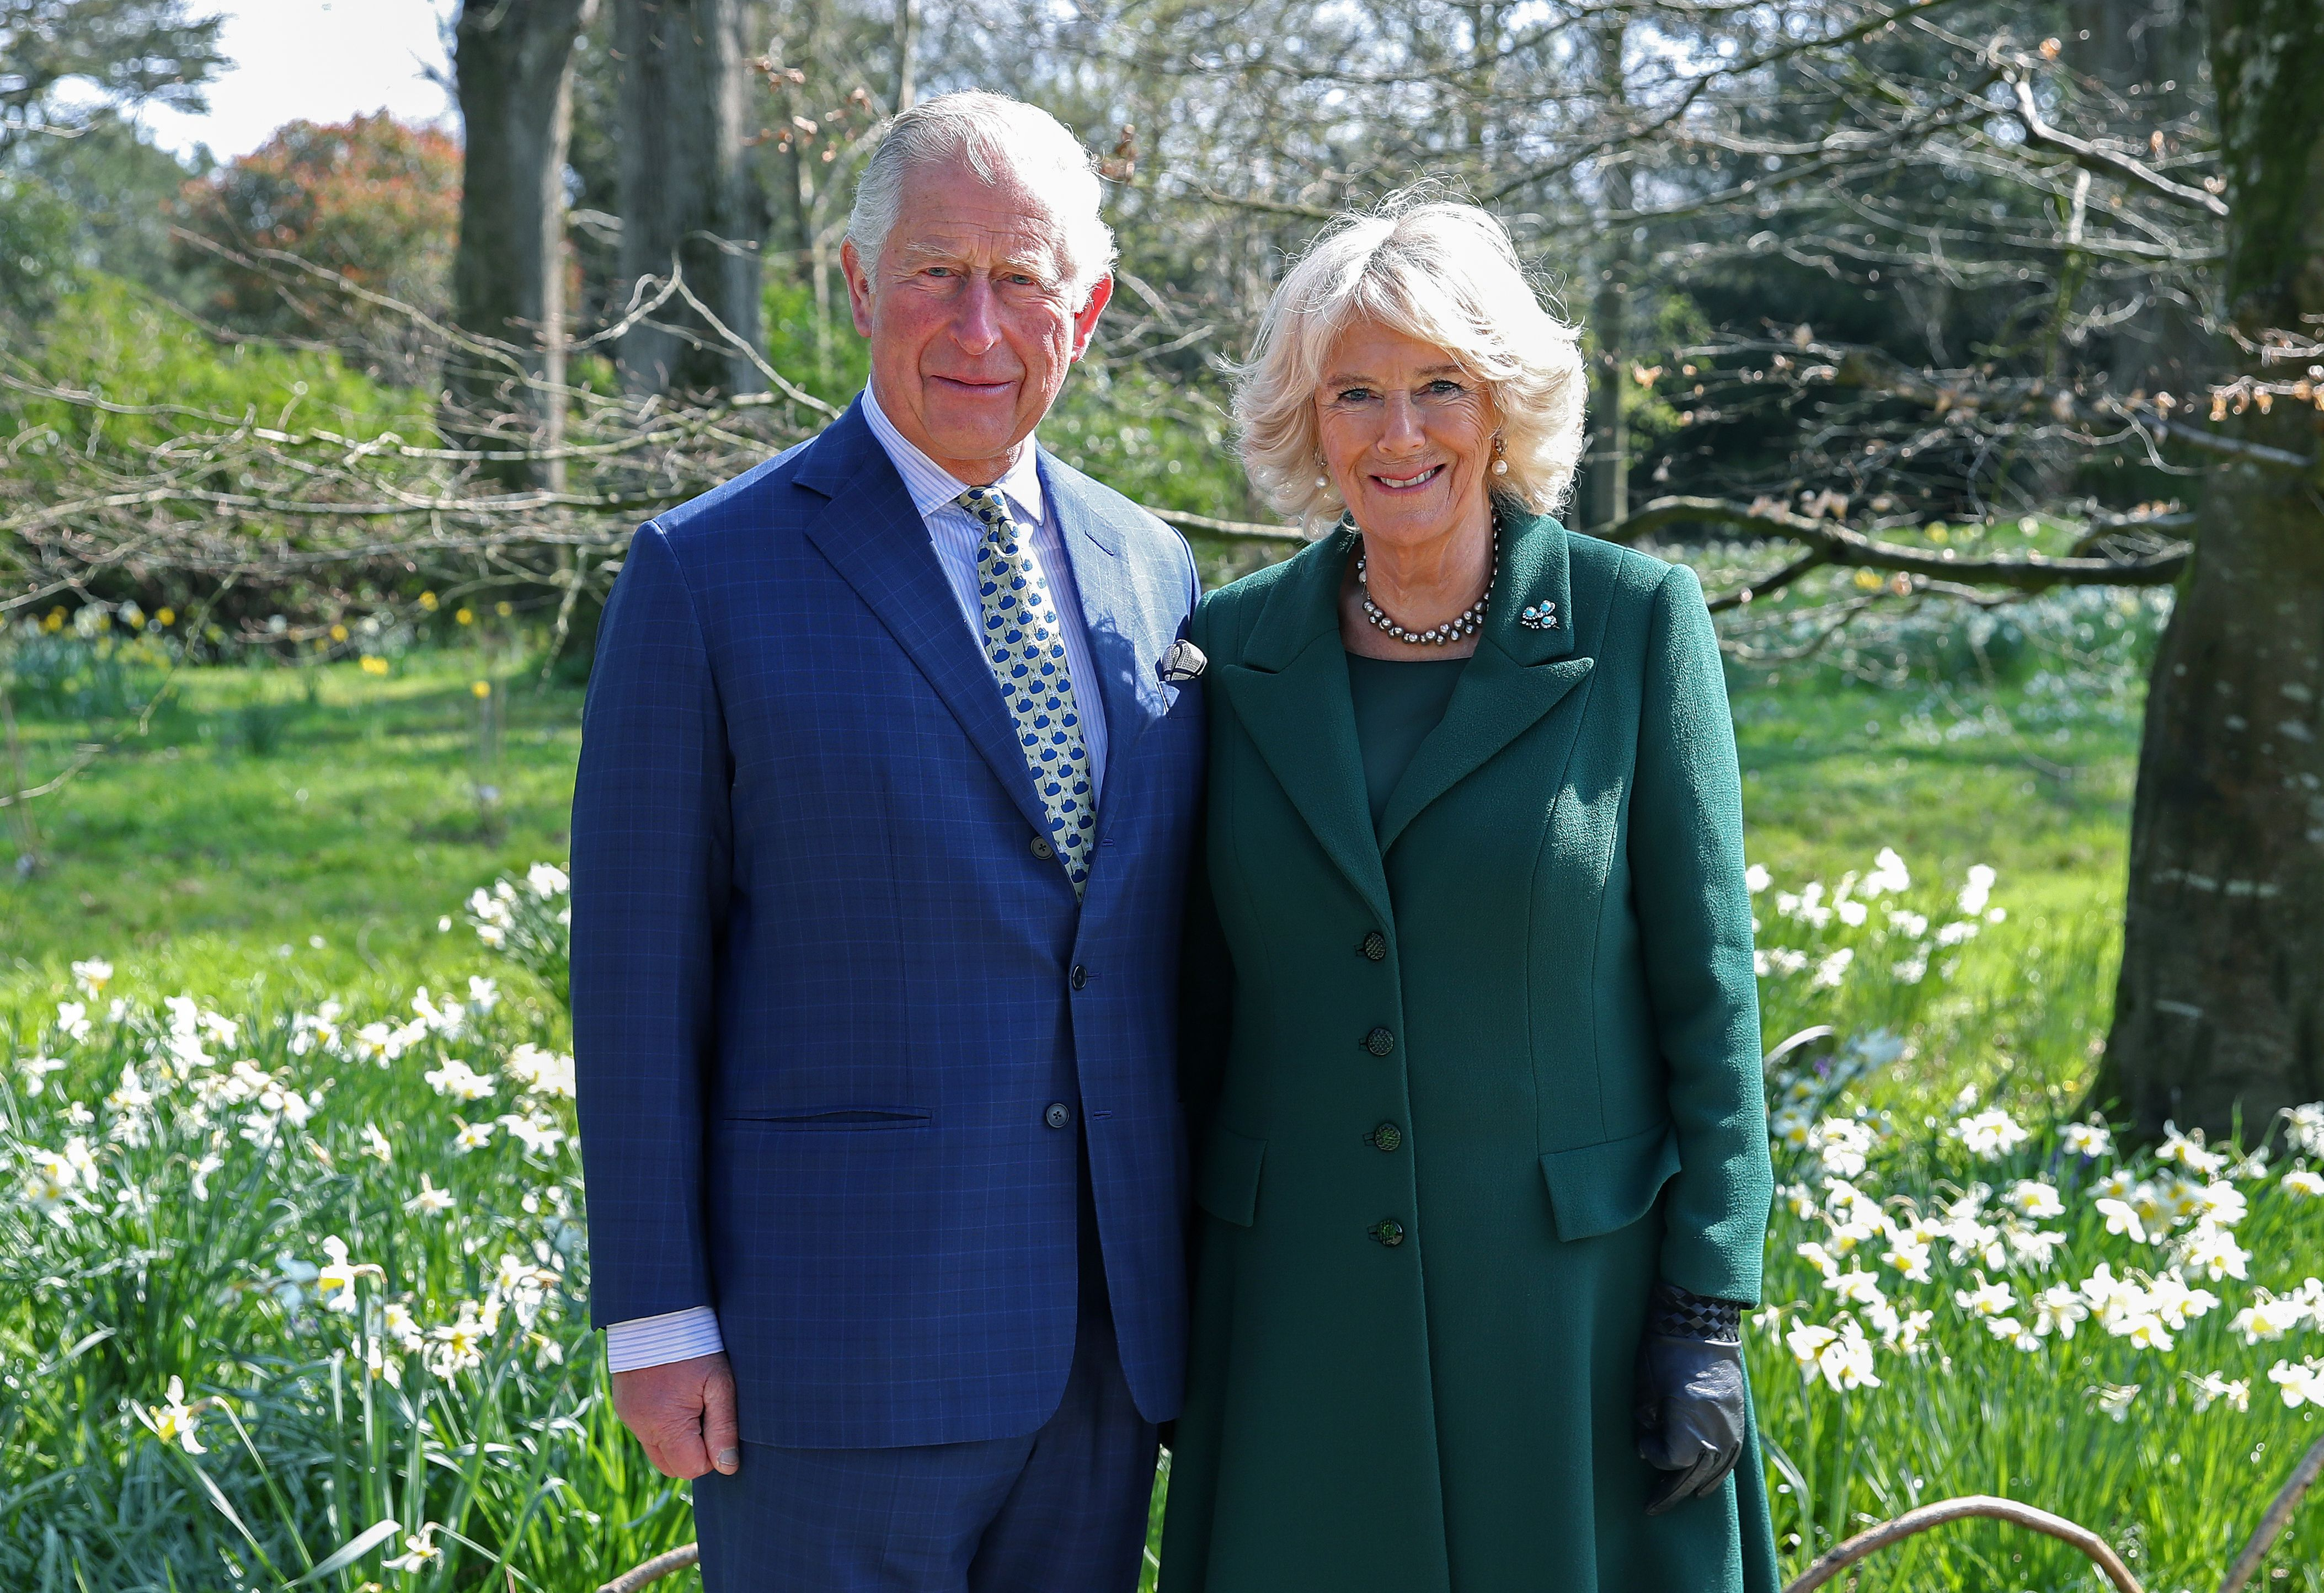 Prince Charles and Duchess Camilla at the reopening of Hillsborough Castle on April 09, 2019, in Belfast, Northern Ireland | Photo: Chris Jackson-WPA Pool/Getty Images